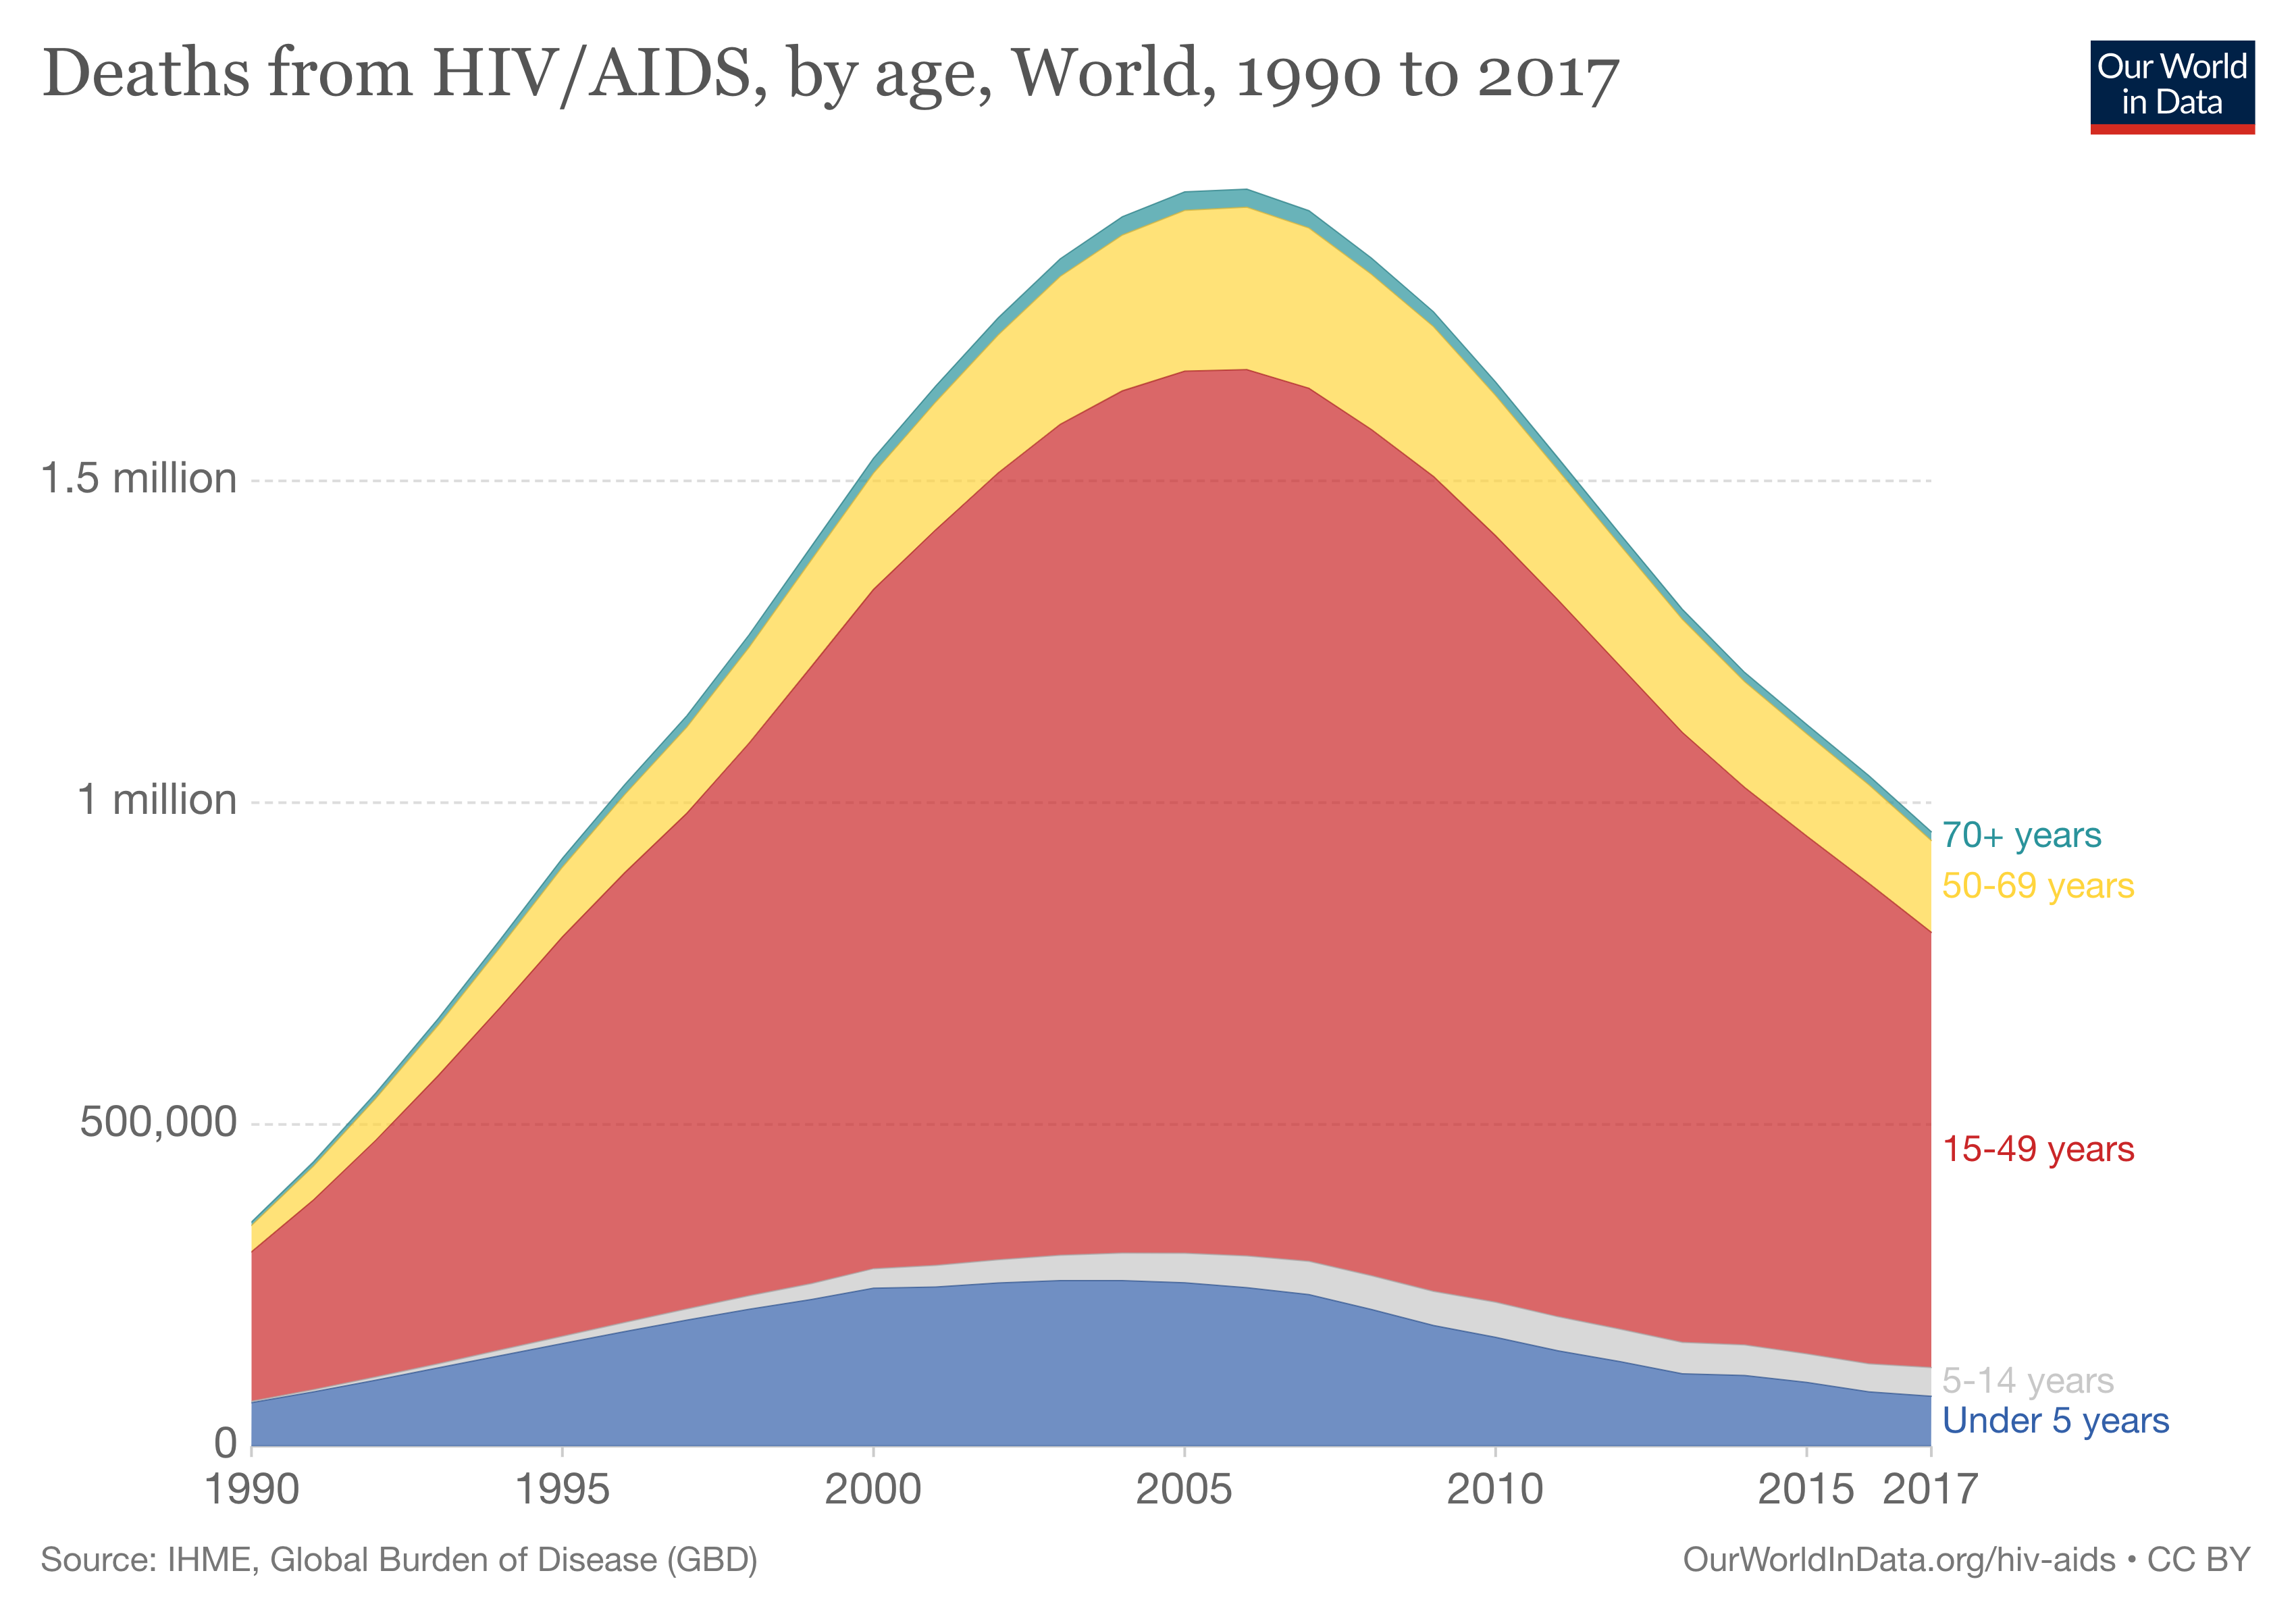 Deaths from HIV/AIDS, by age, world 1990 to 2017.